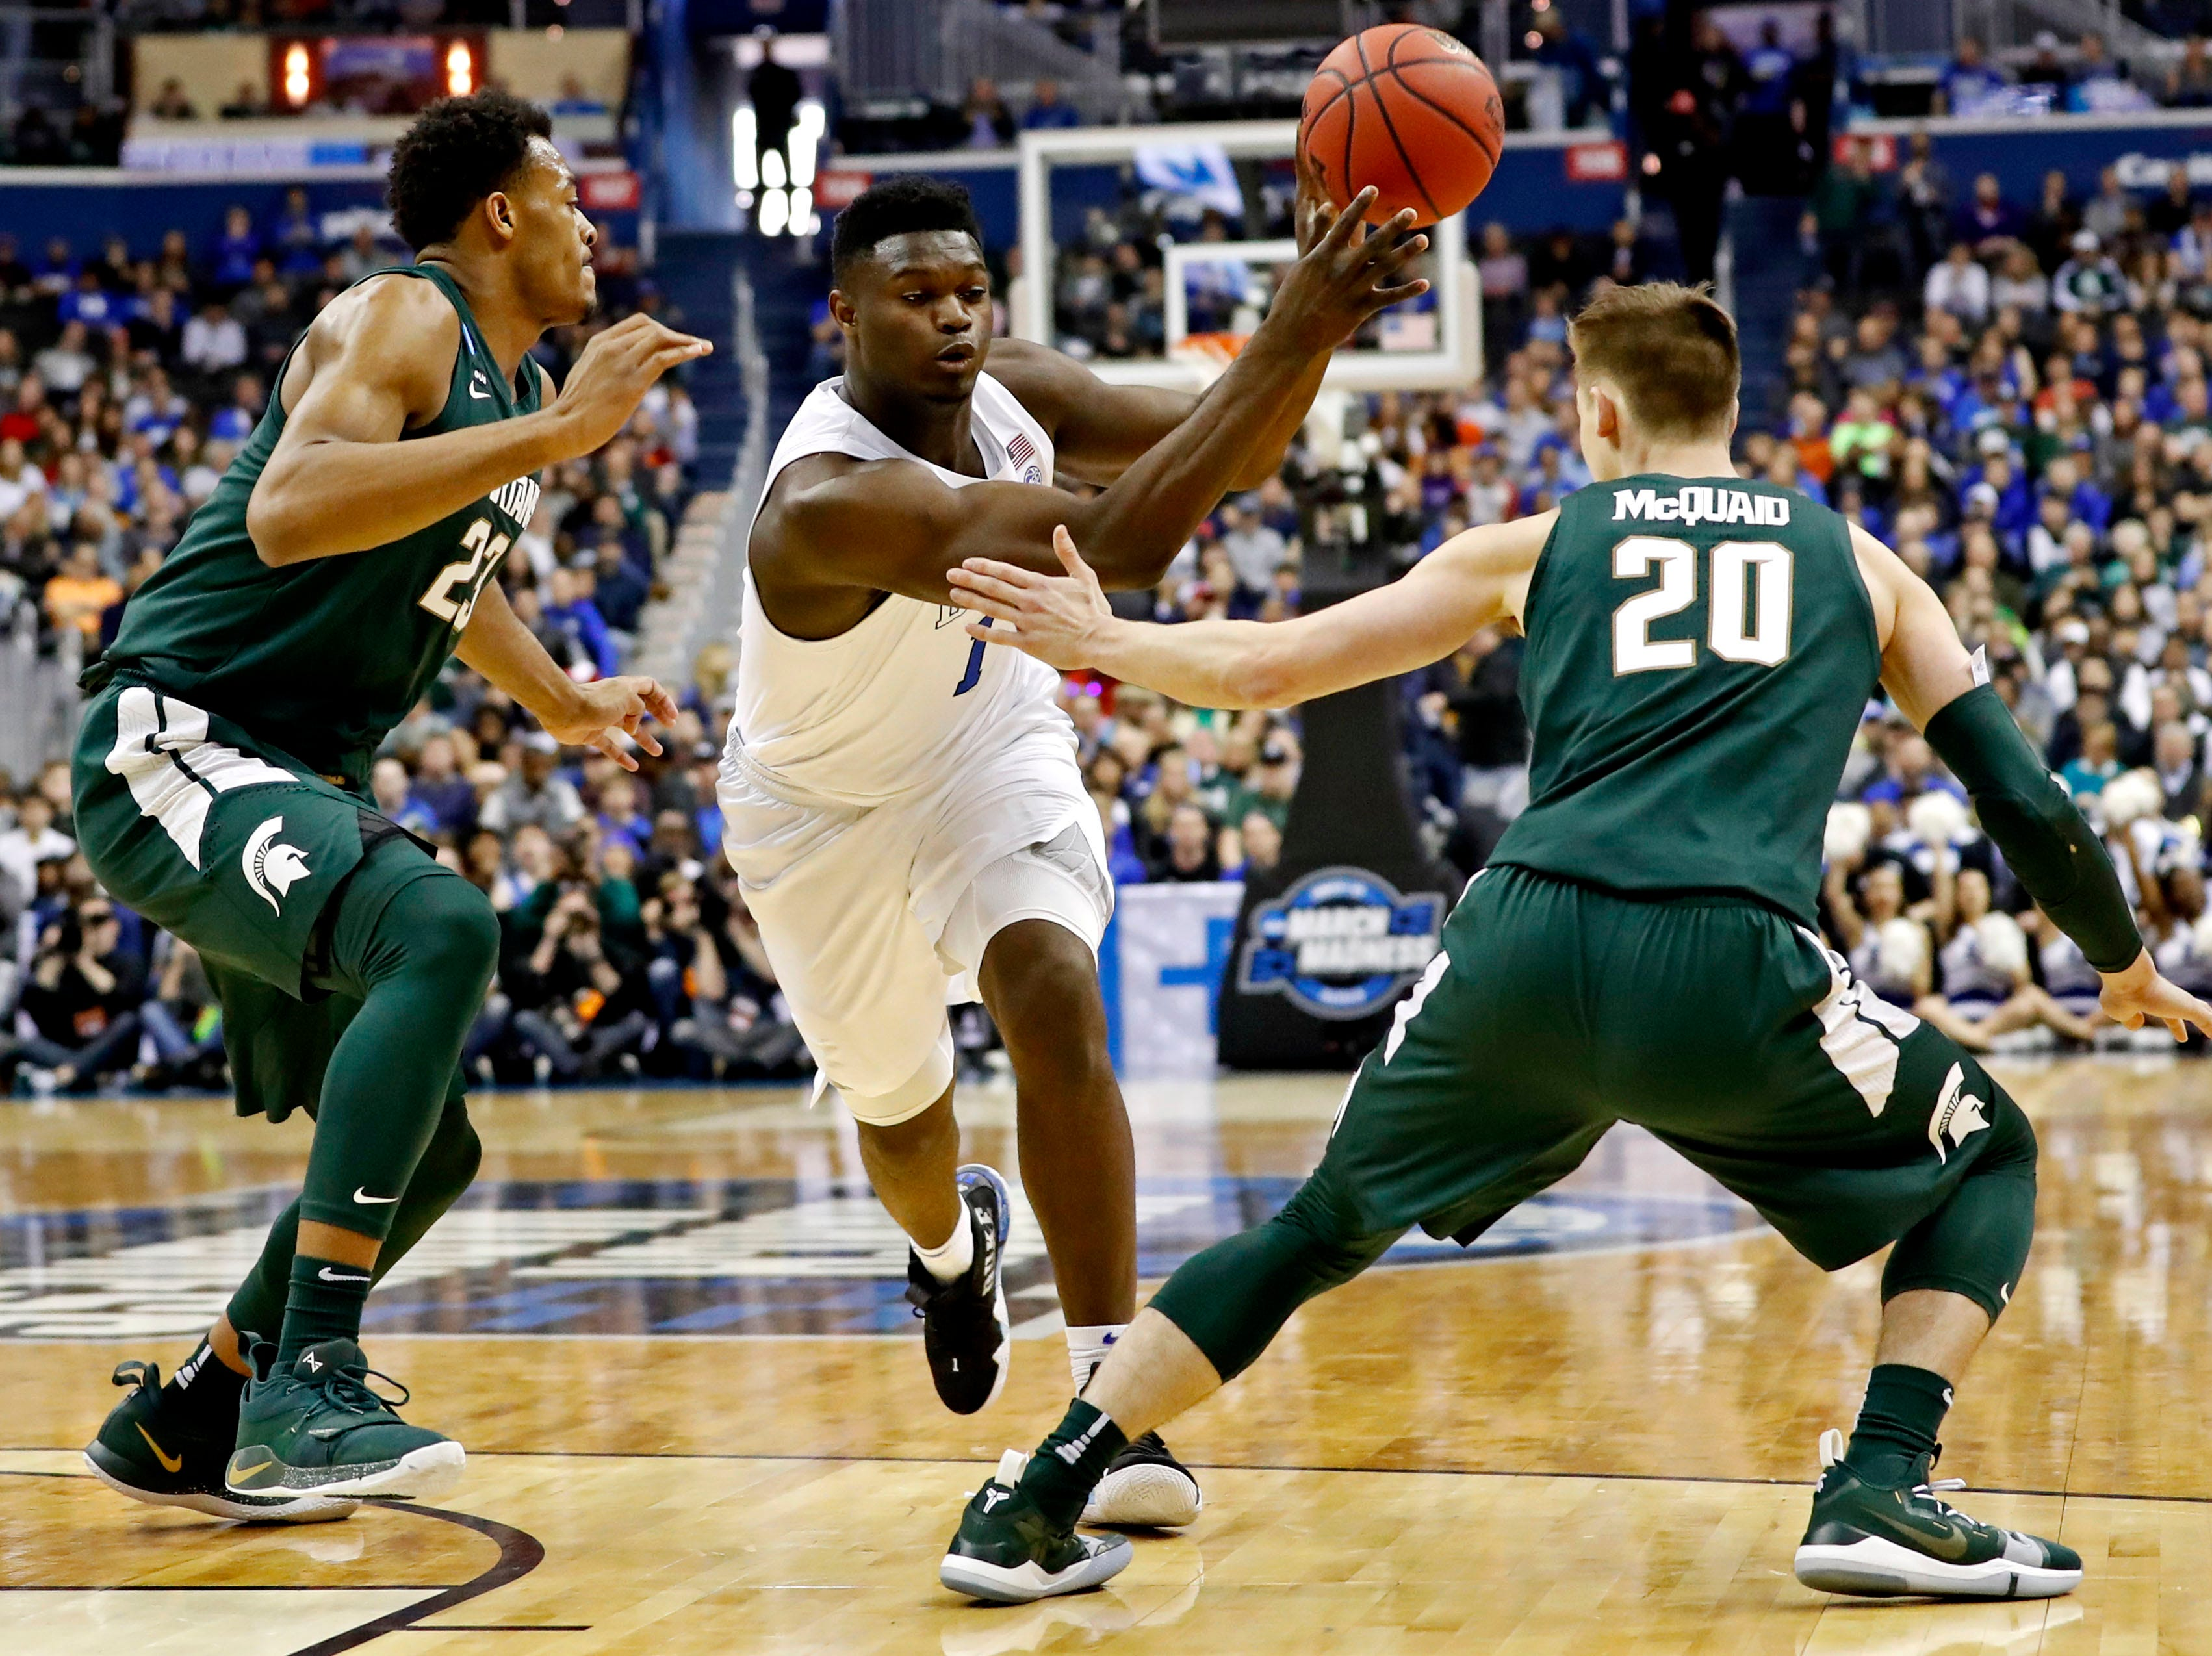 Mar 31, 2019; Washington, DC, USA; Duke Blue Devils forward Zion Williamson (1) passes the ball against Michigan State Spartans guard Matt McQuaid (20) during the first half in the championship game of the east regional of the 2019 NCAA Tournament at Capital One Arena. Mandatory Credit: Geoff Burke-USA TODAY Sports